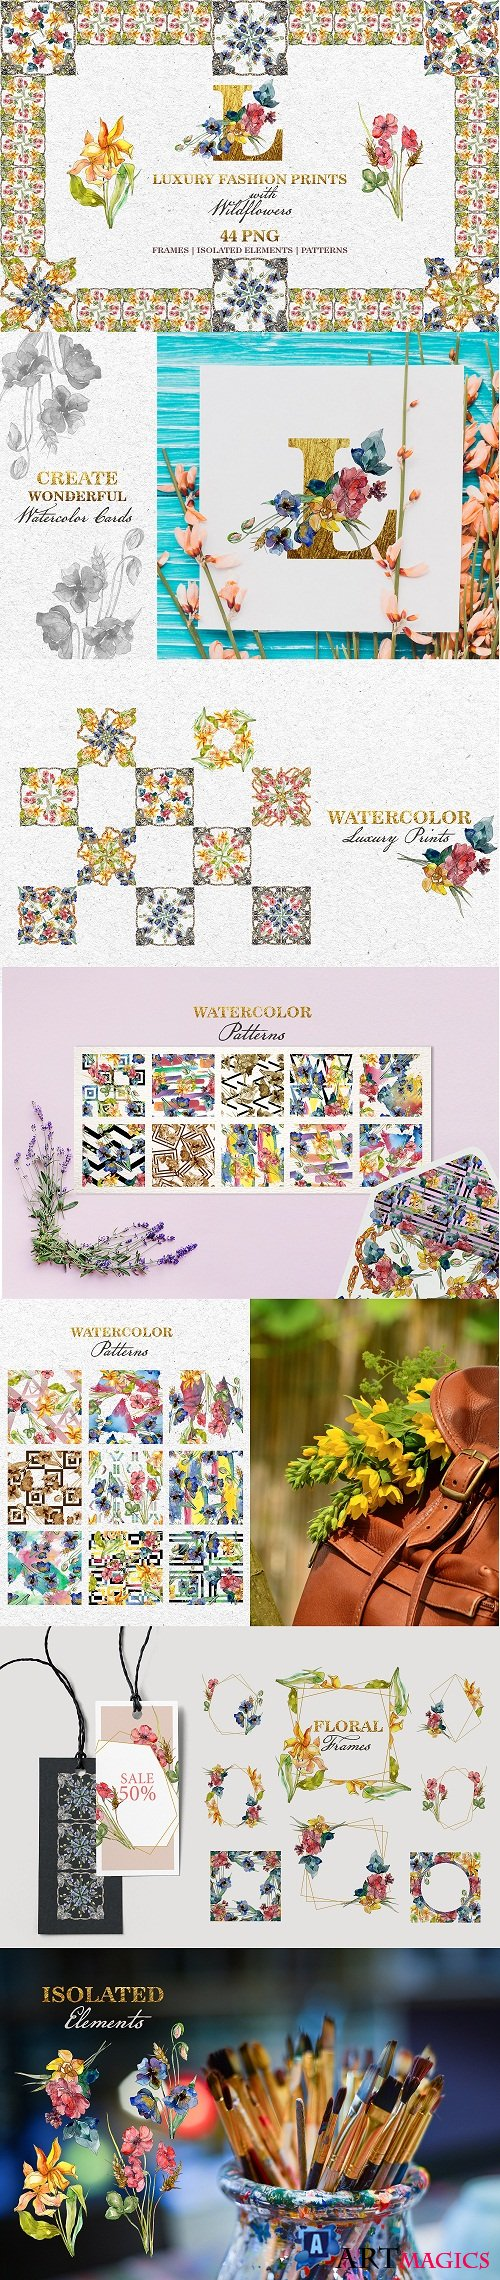 Fashion prints with Wildflowers Watercolor png - 220633